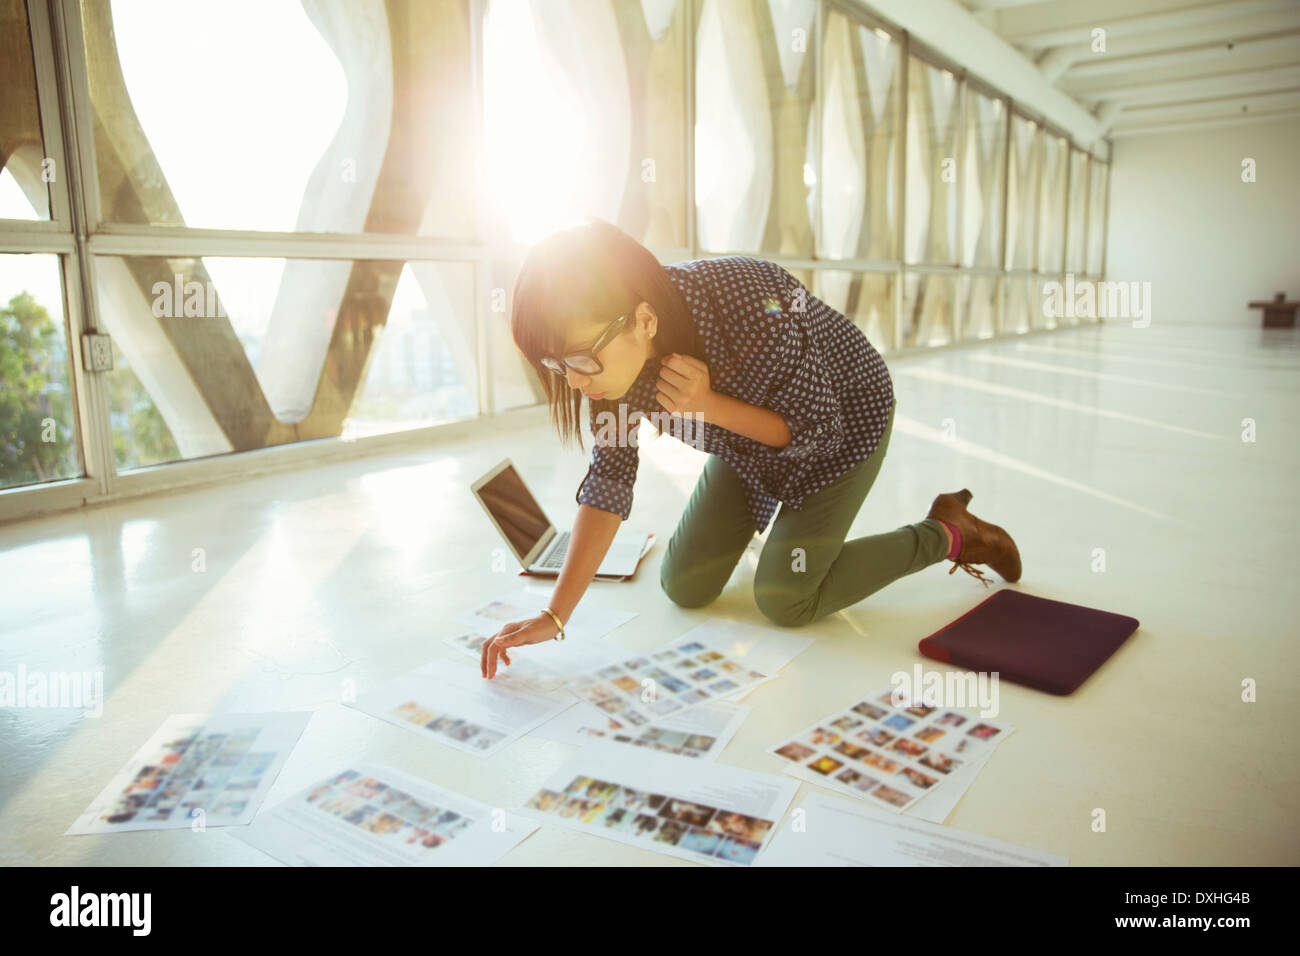 Creative businesswoman reviewing photography proofs on office floor - Stock Image